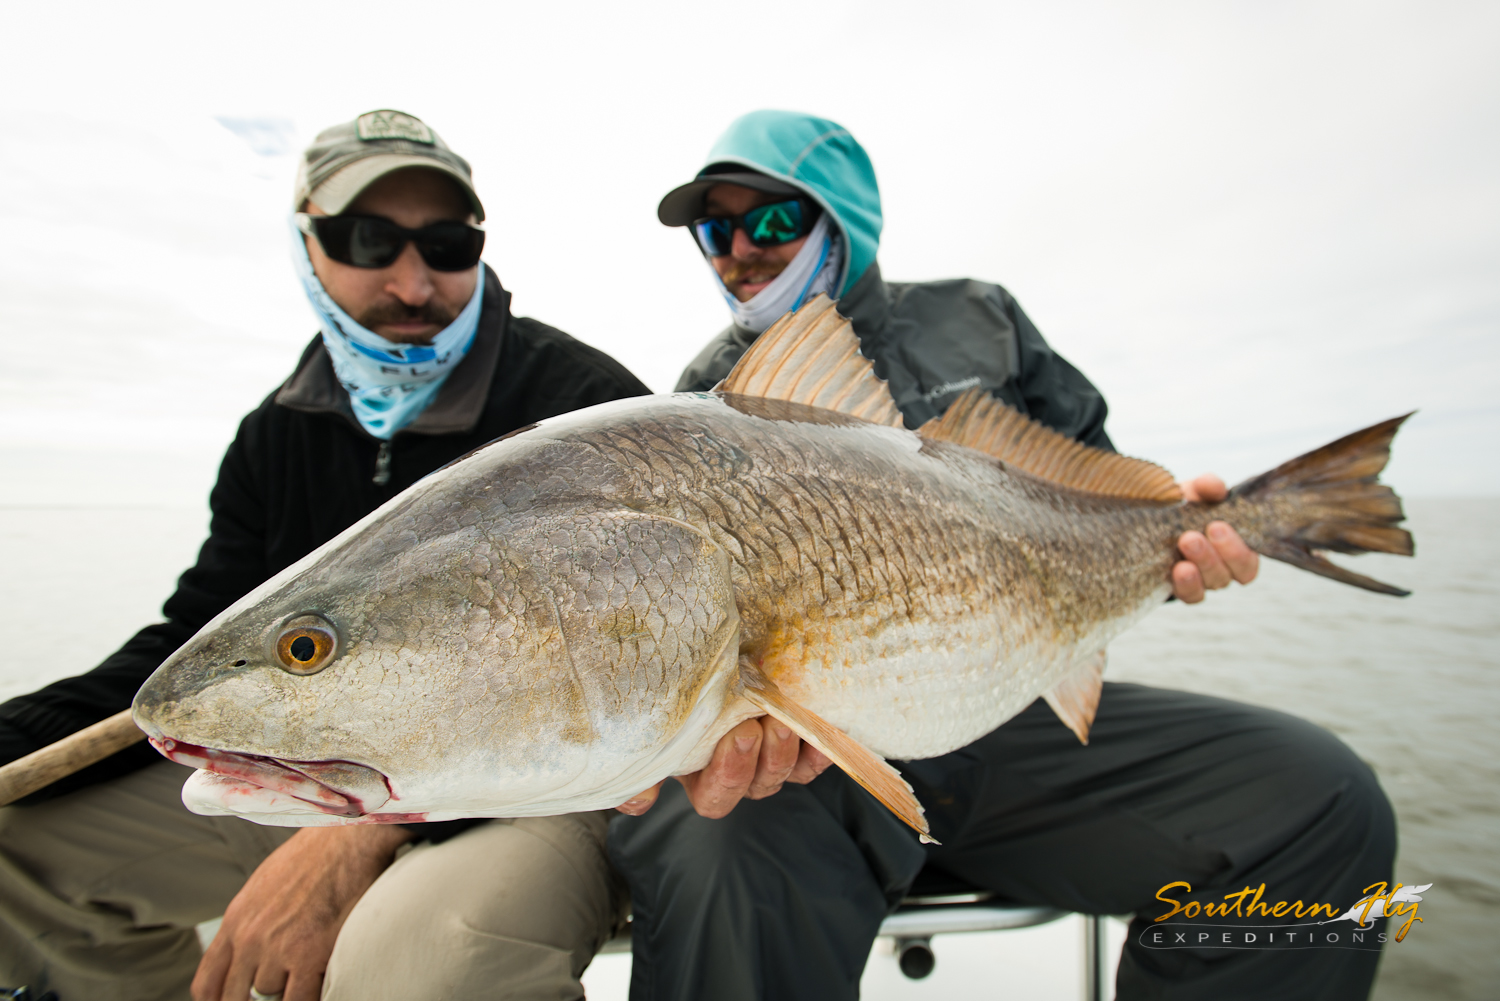 Best fly fishing guide in Louisiana southern fly expeditions and captain brandon keck